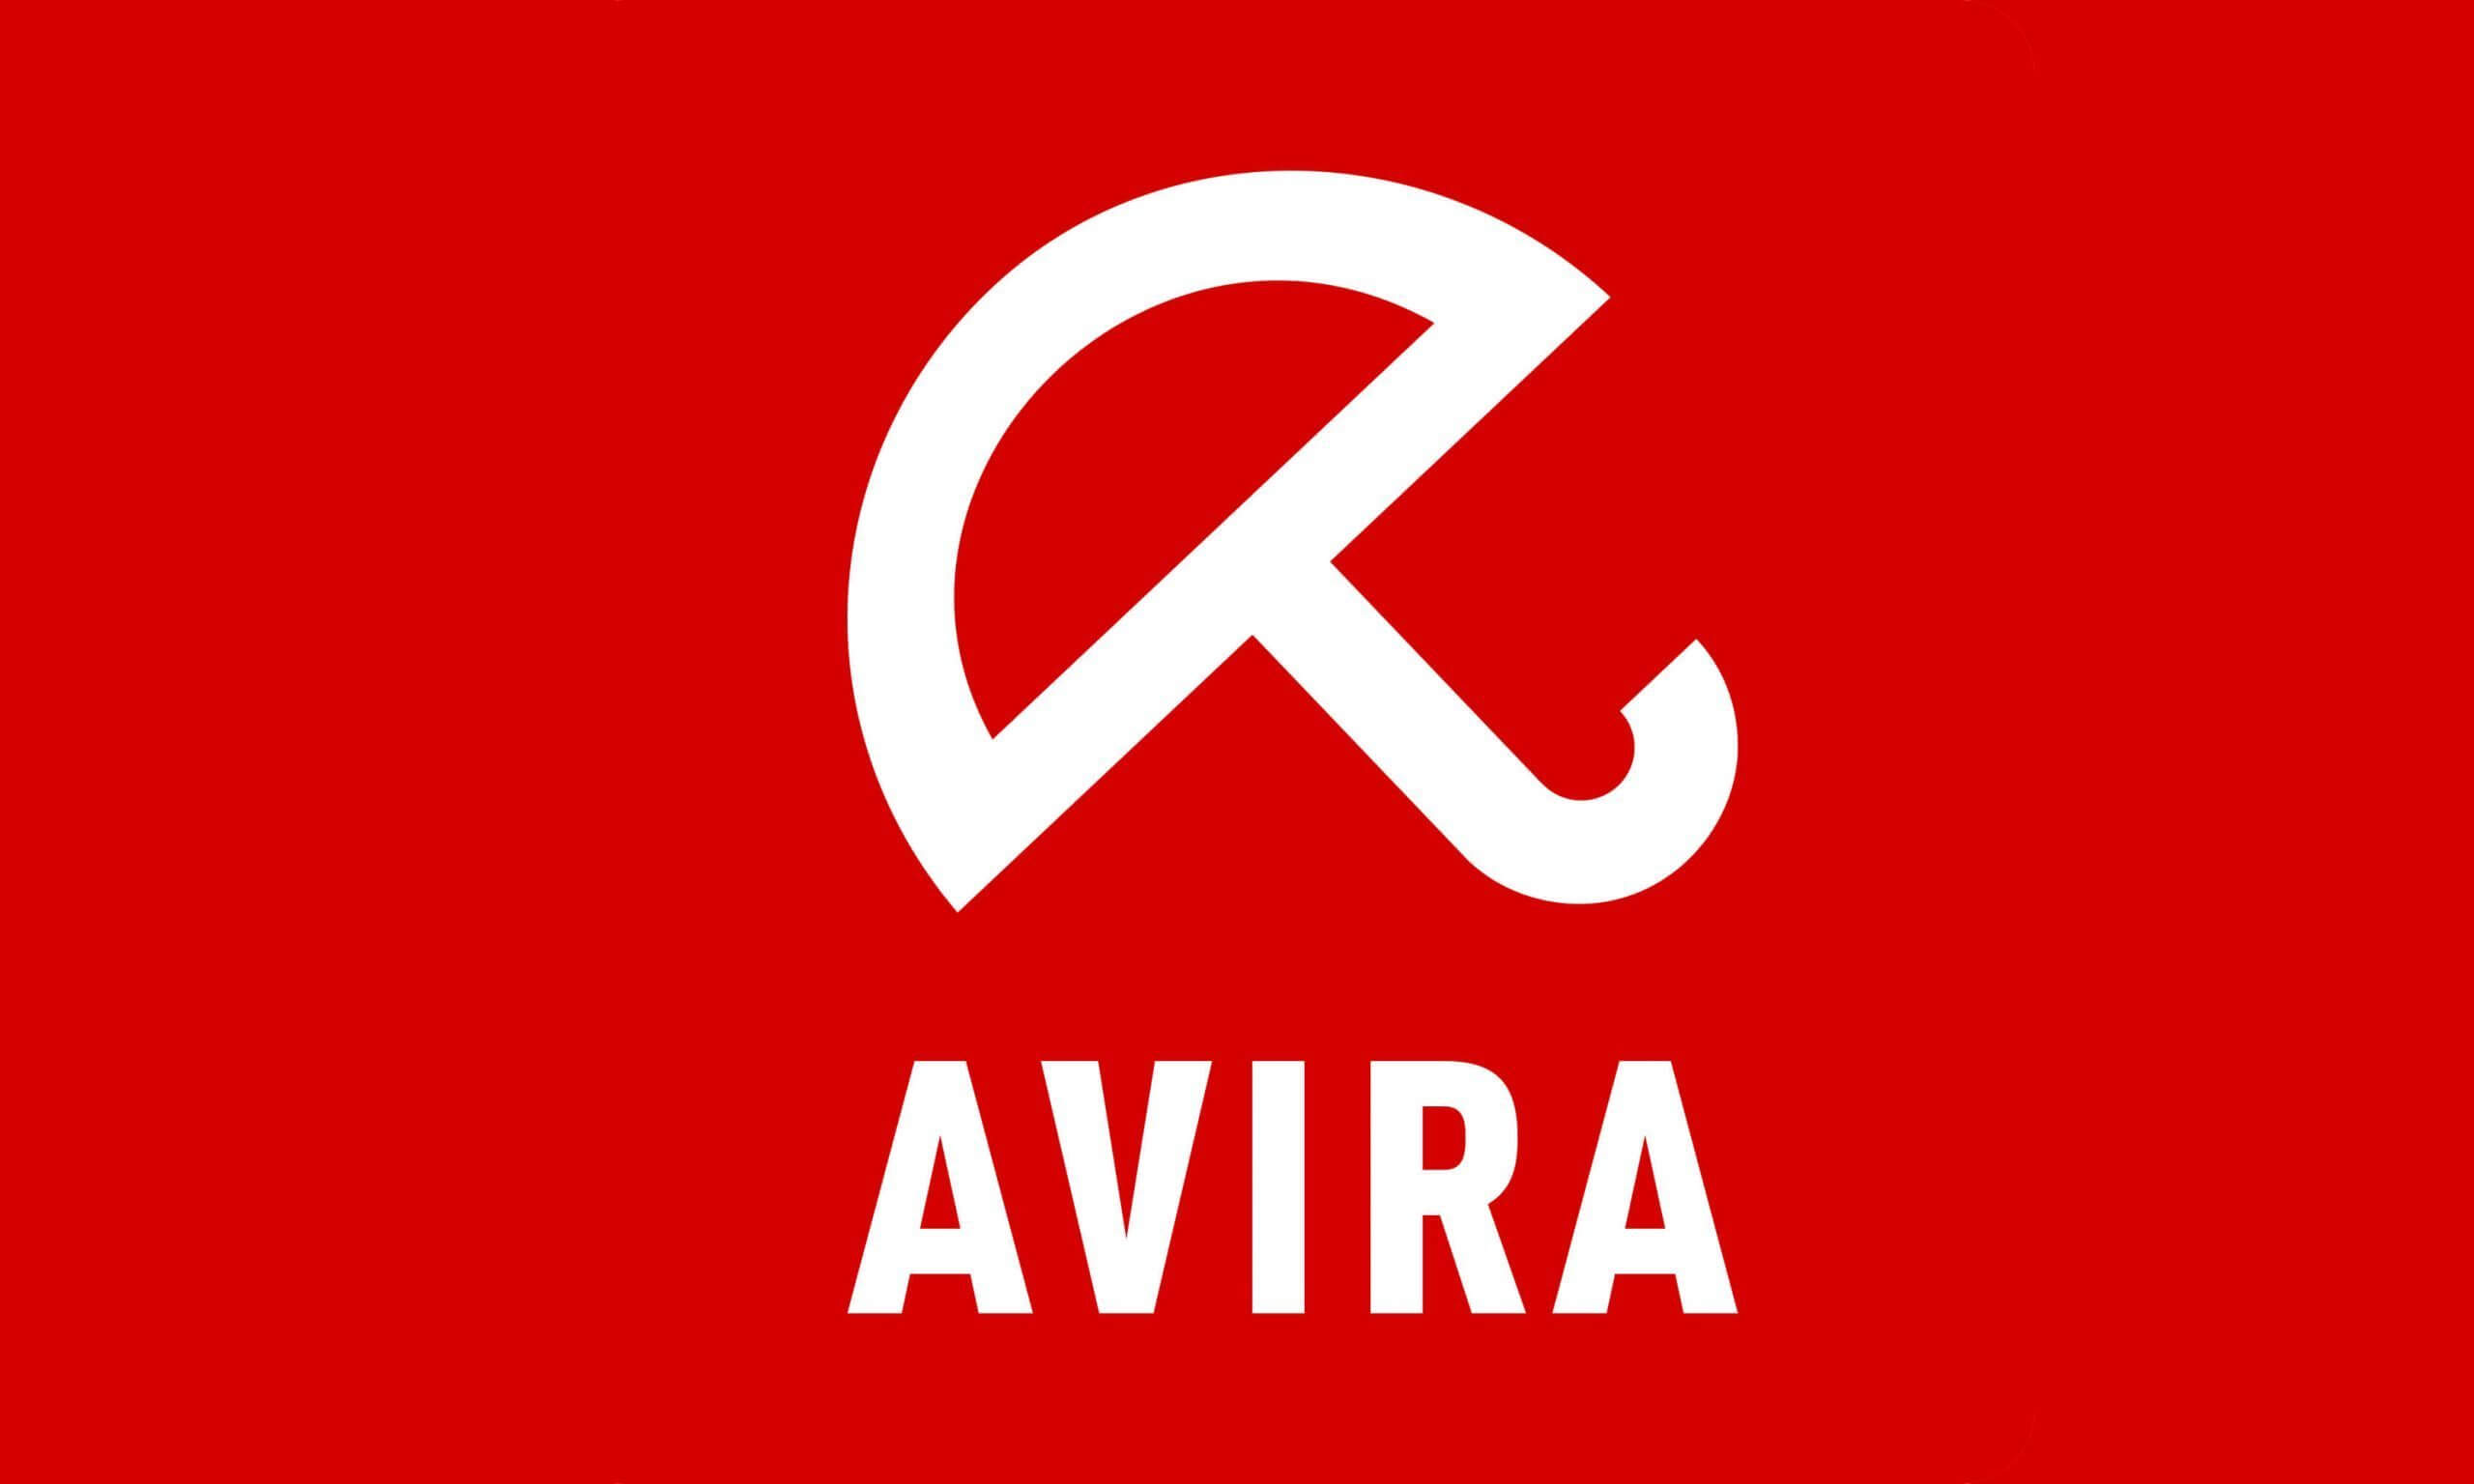 Avira Antivirus Pro 15.0.2007.1910 with All Keys Full Free Download 2021 Crack